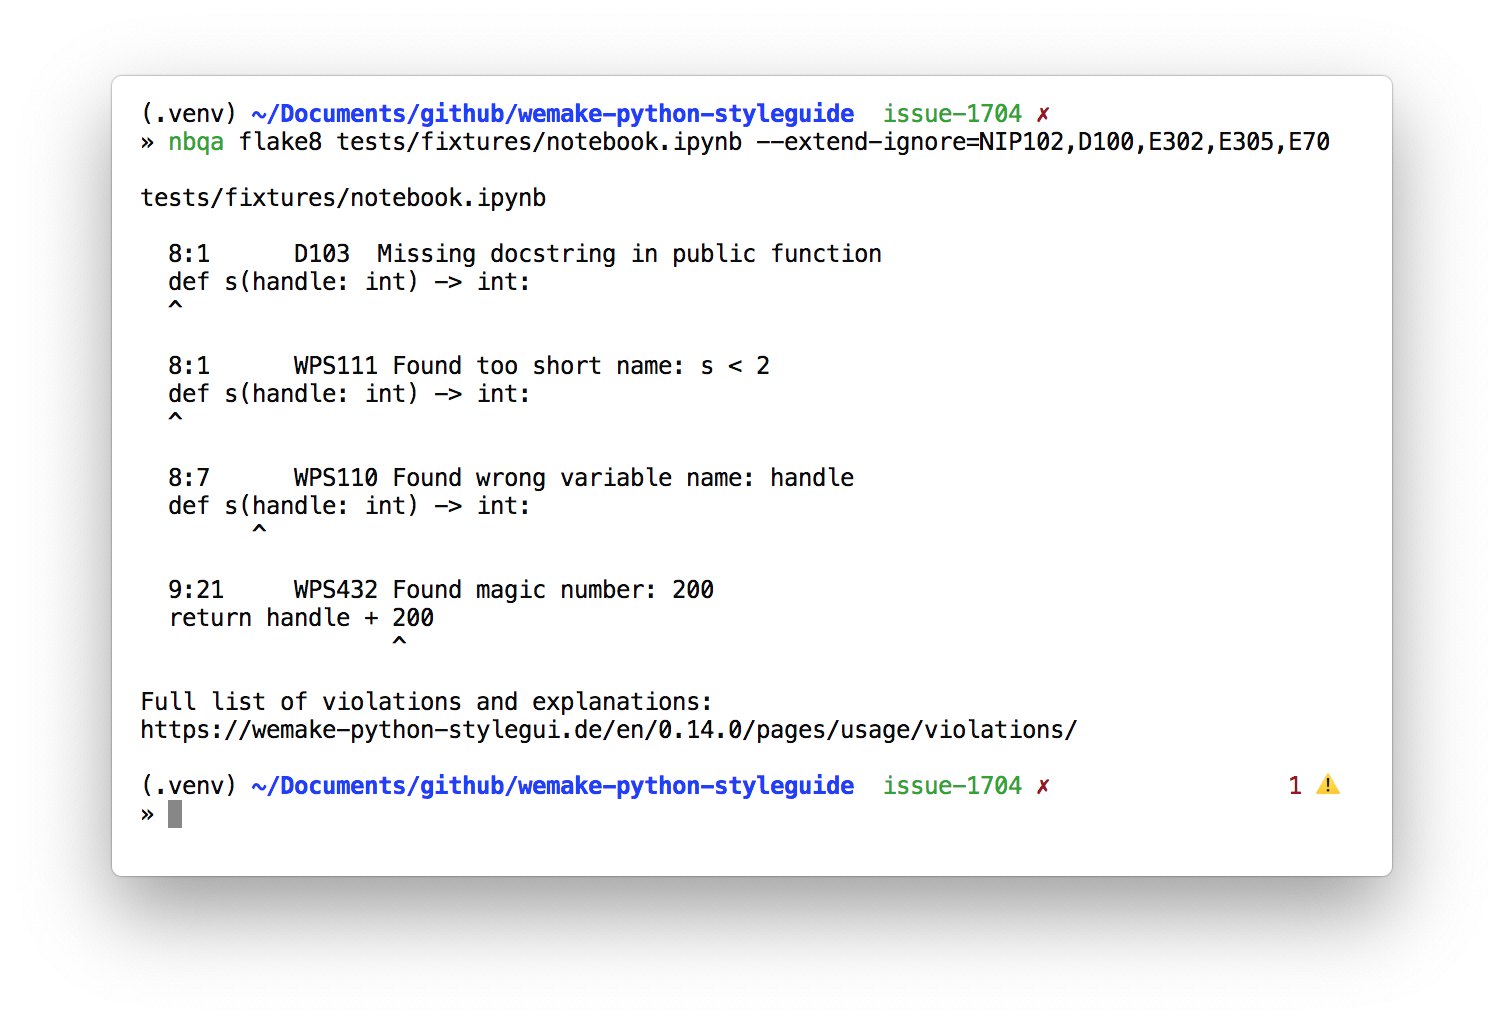 https://raw.githubusercontent.com/MarcoGorelli/wemake-python-styleguide/issue-1704/docs/_static/notebook_terminal.png